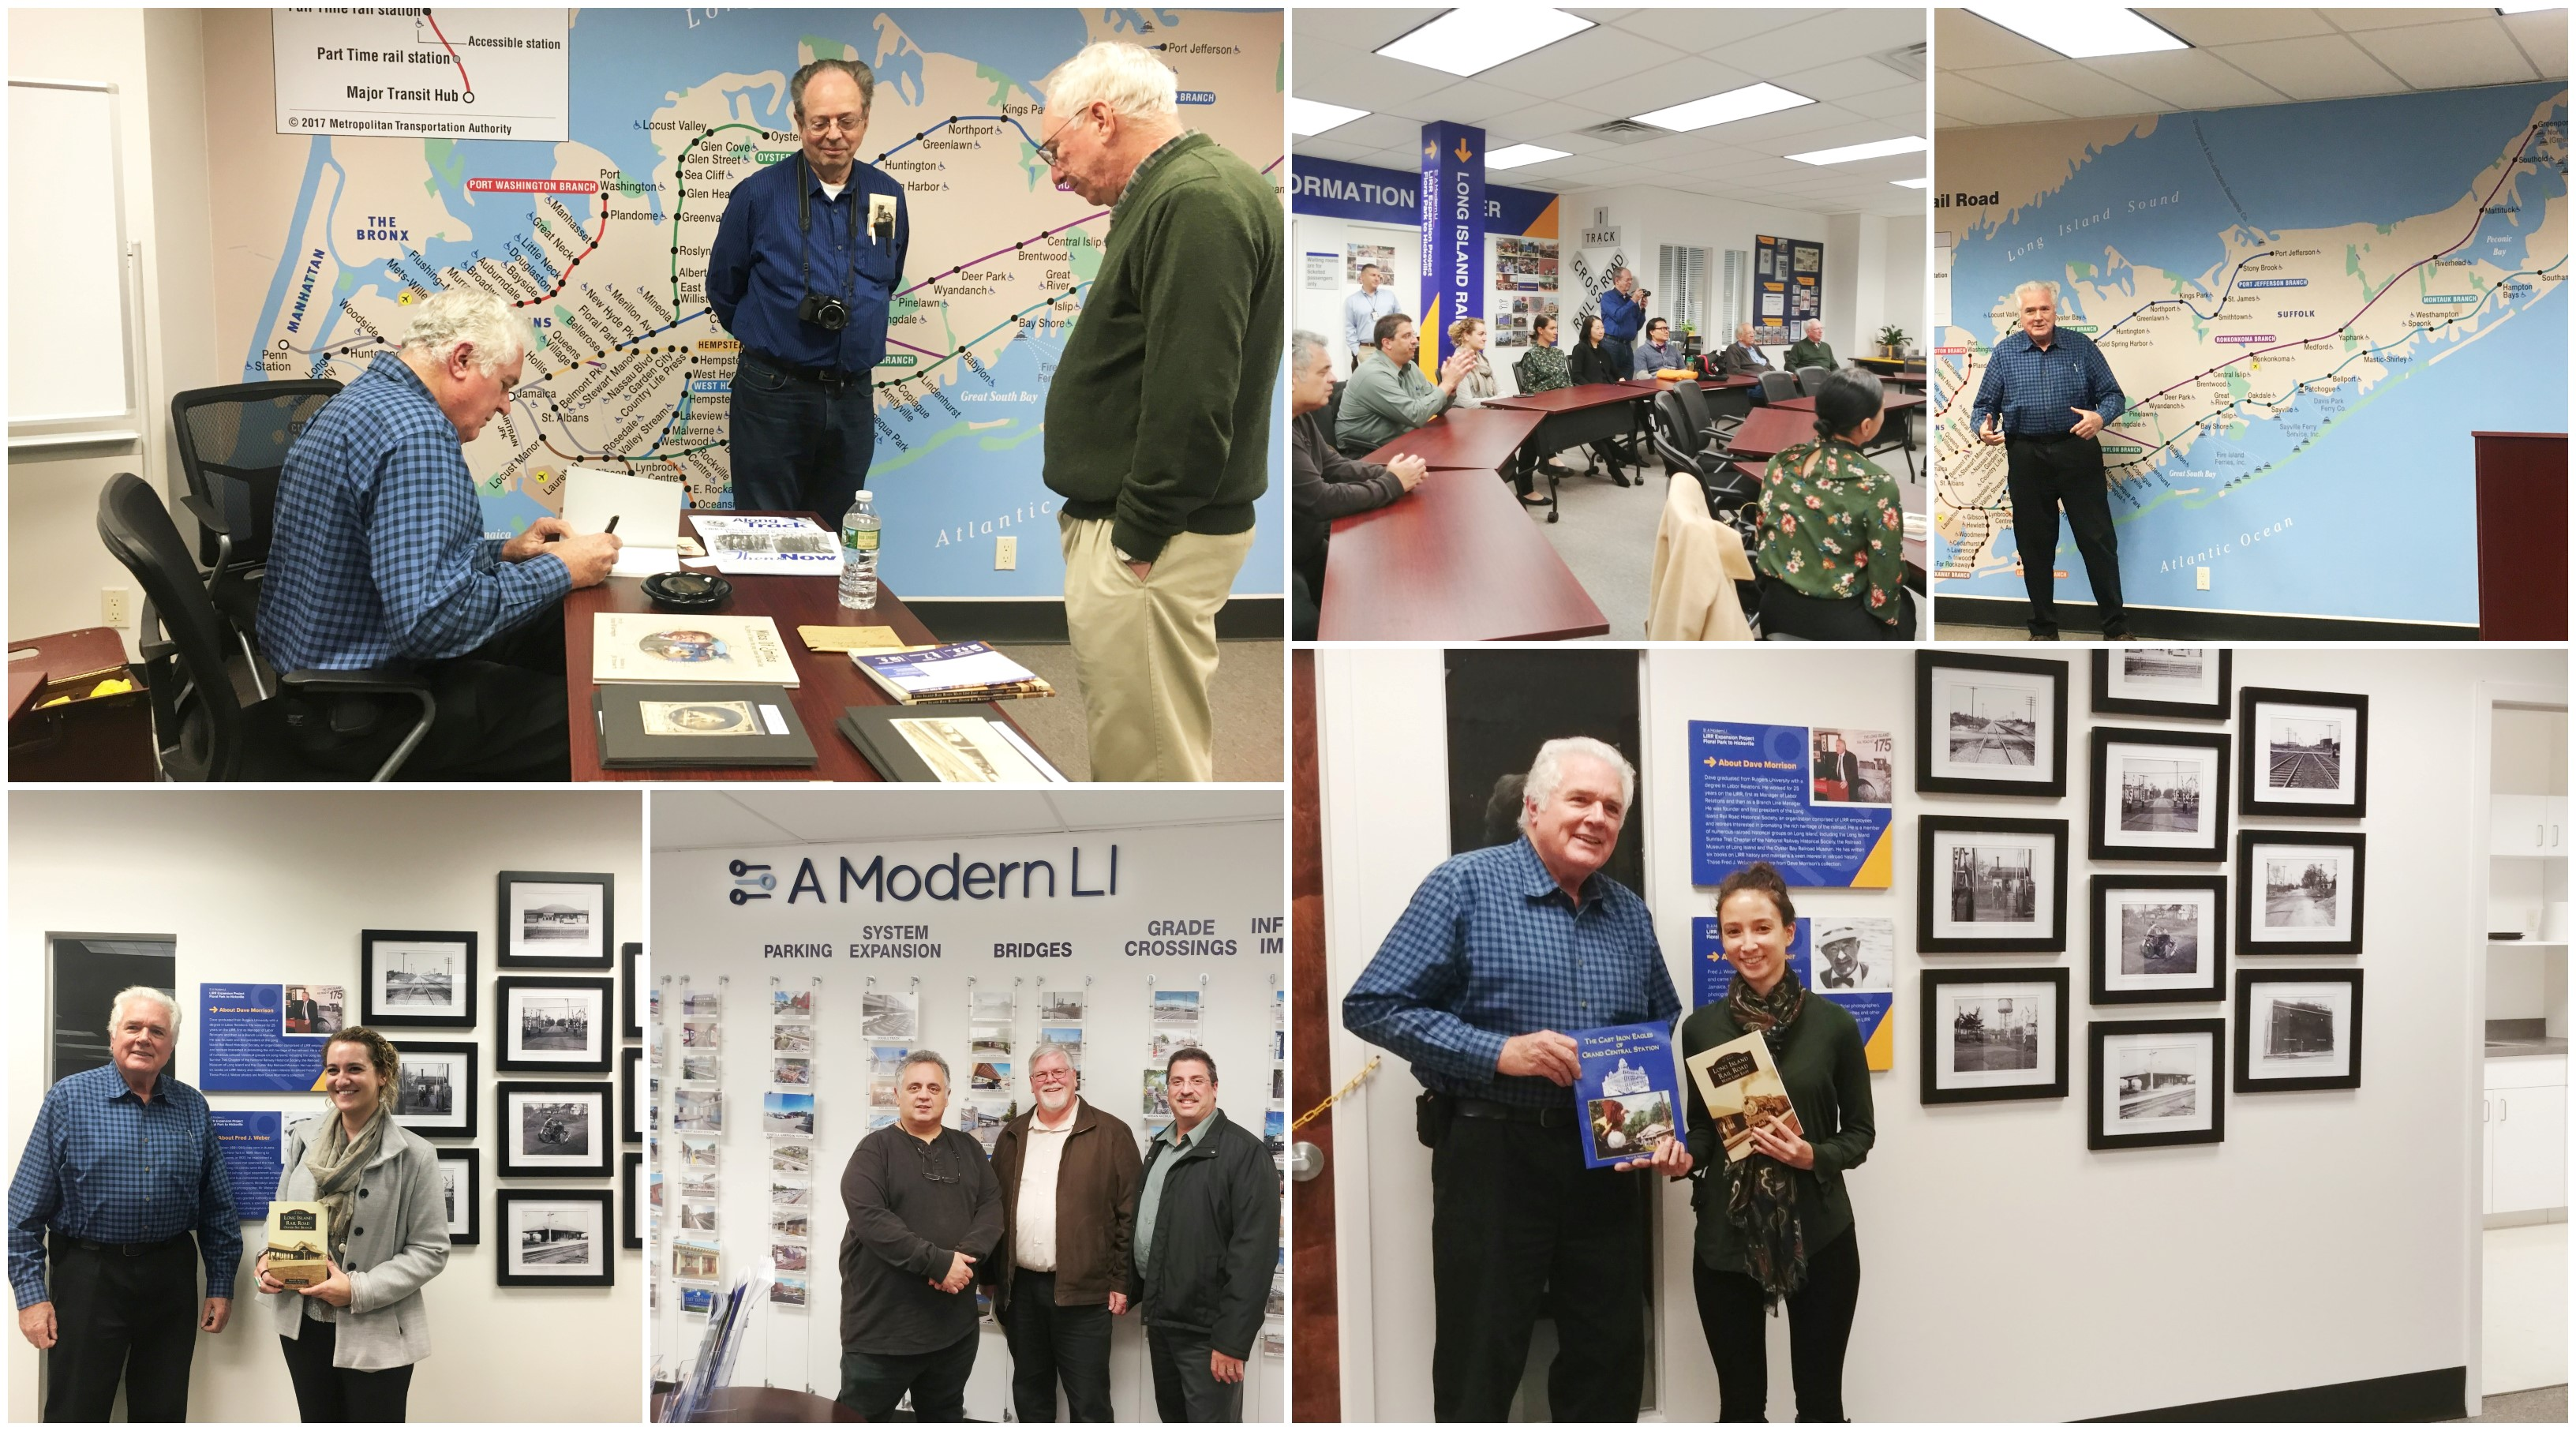 Dave Morrison Signs Book 11-27-18